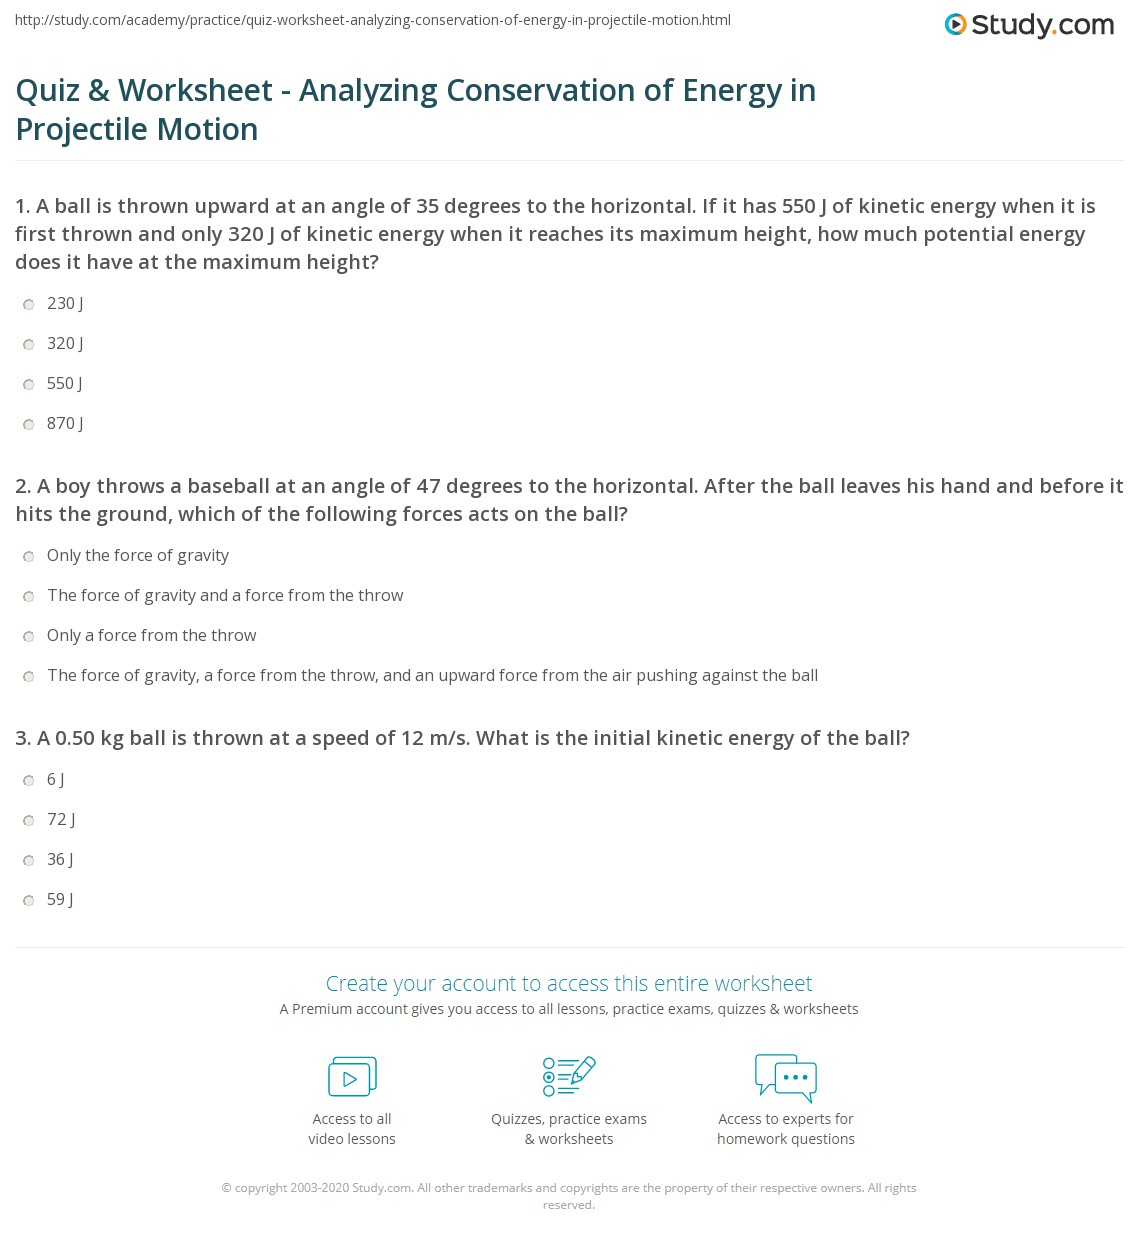 Quiz Worksheet Analyzing Conservation Of Energy In Projectile